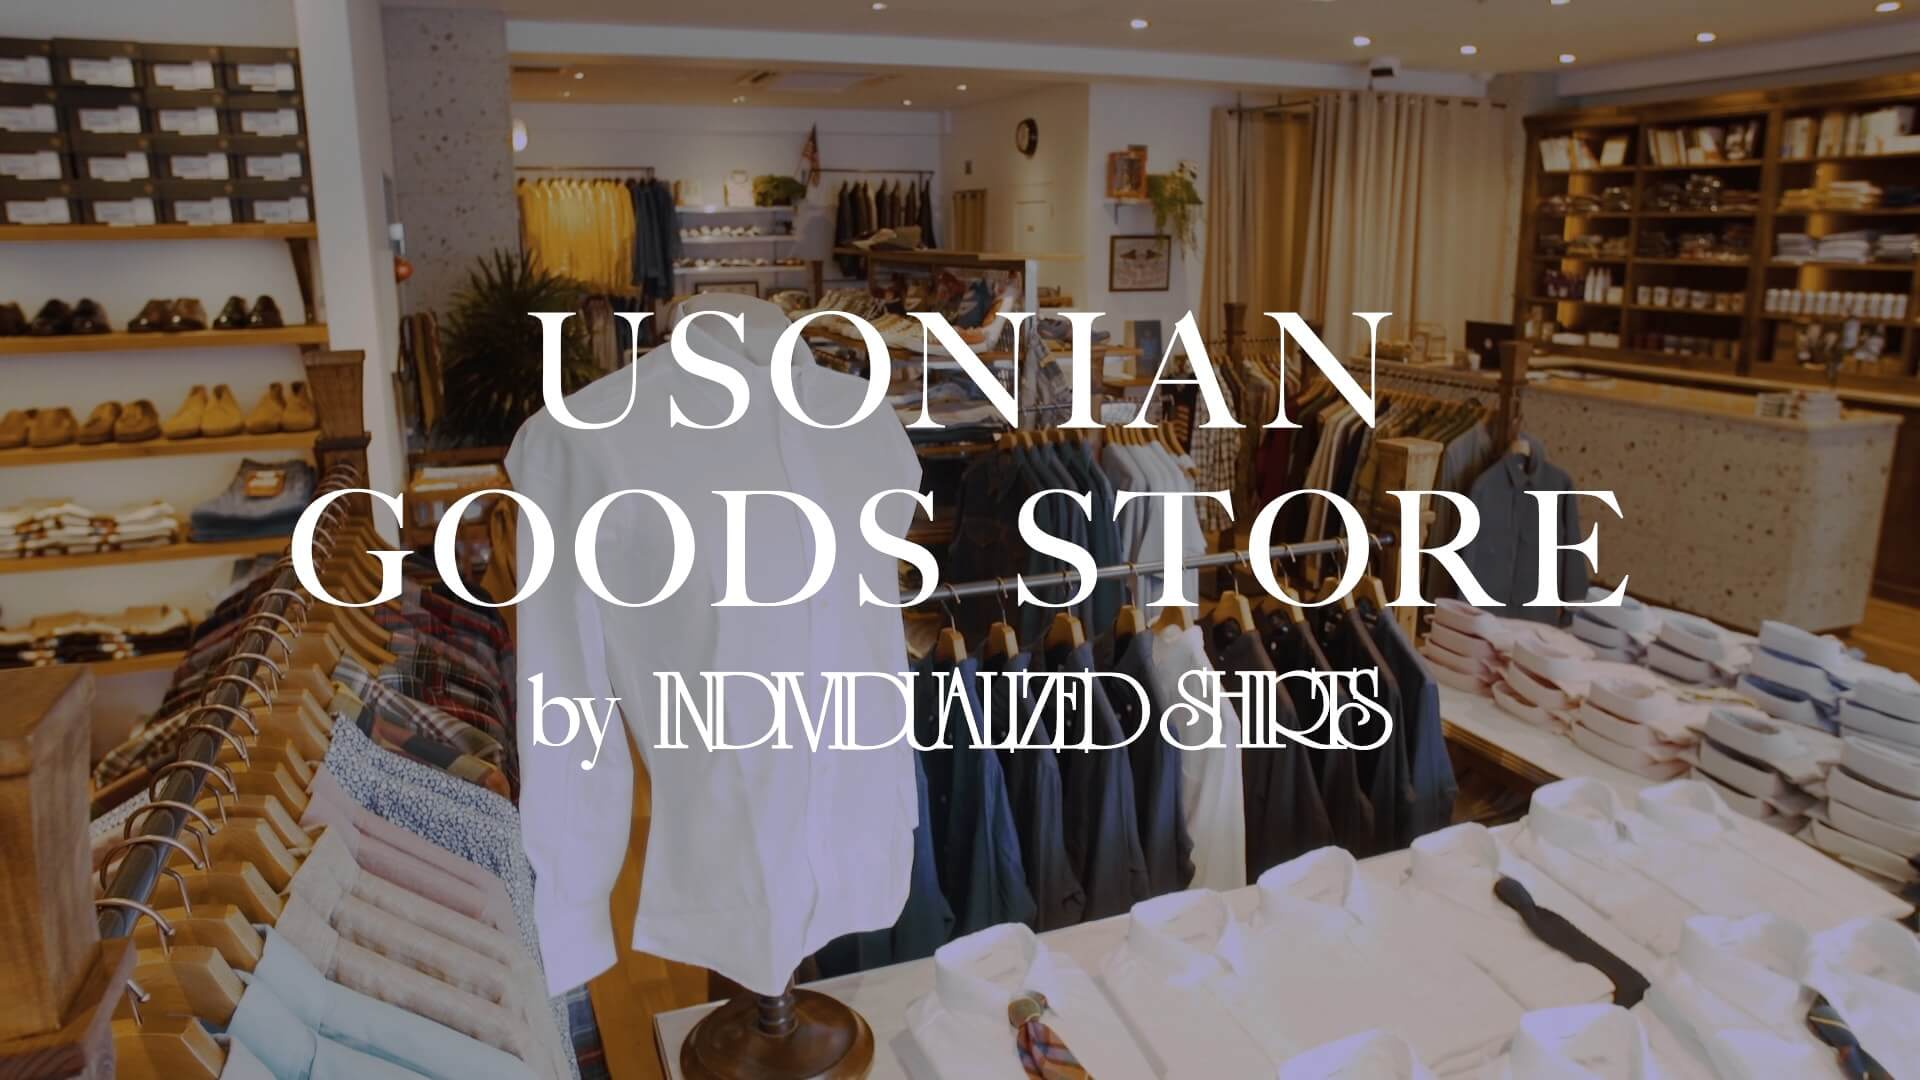 USONIAN GOODS STORE Image Video